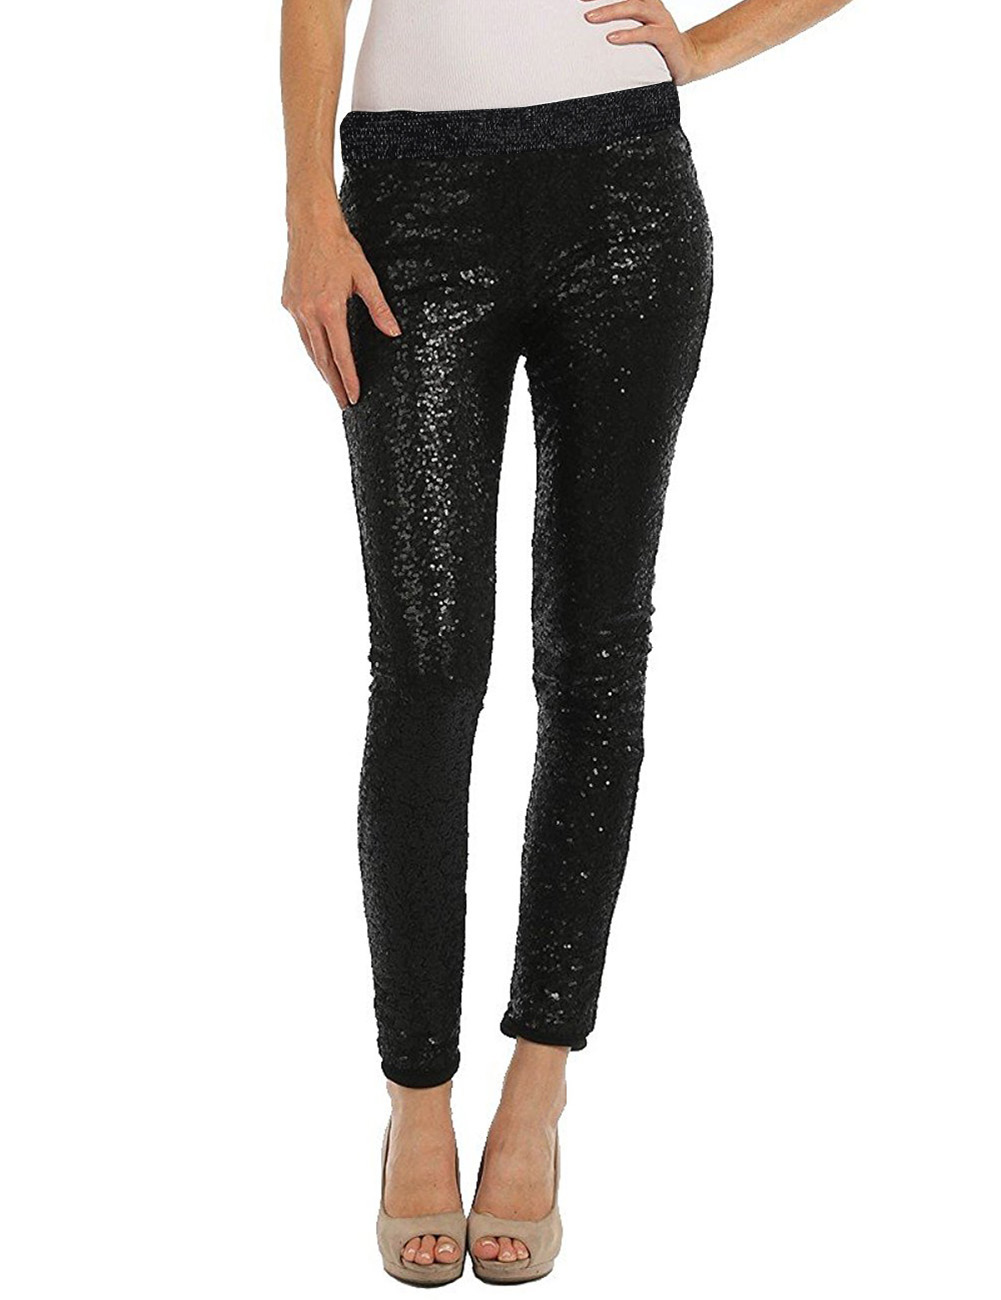 Women Shiny Sequin Stretch Skinny Legging Pants Stretch ...